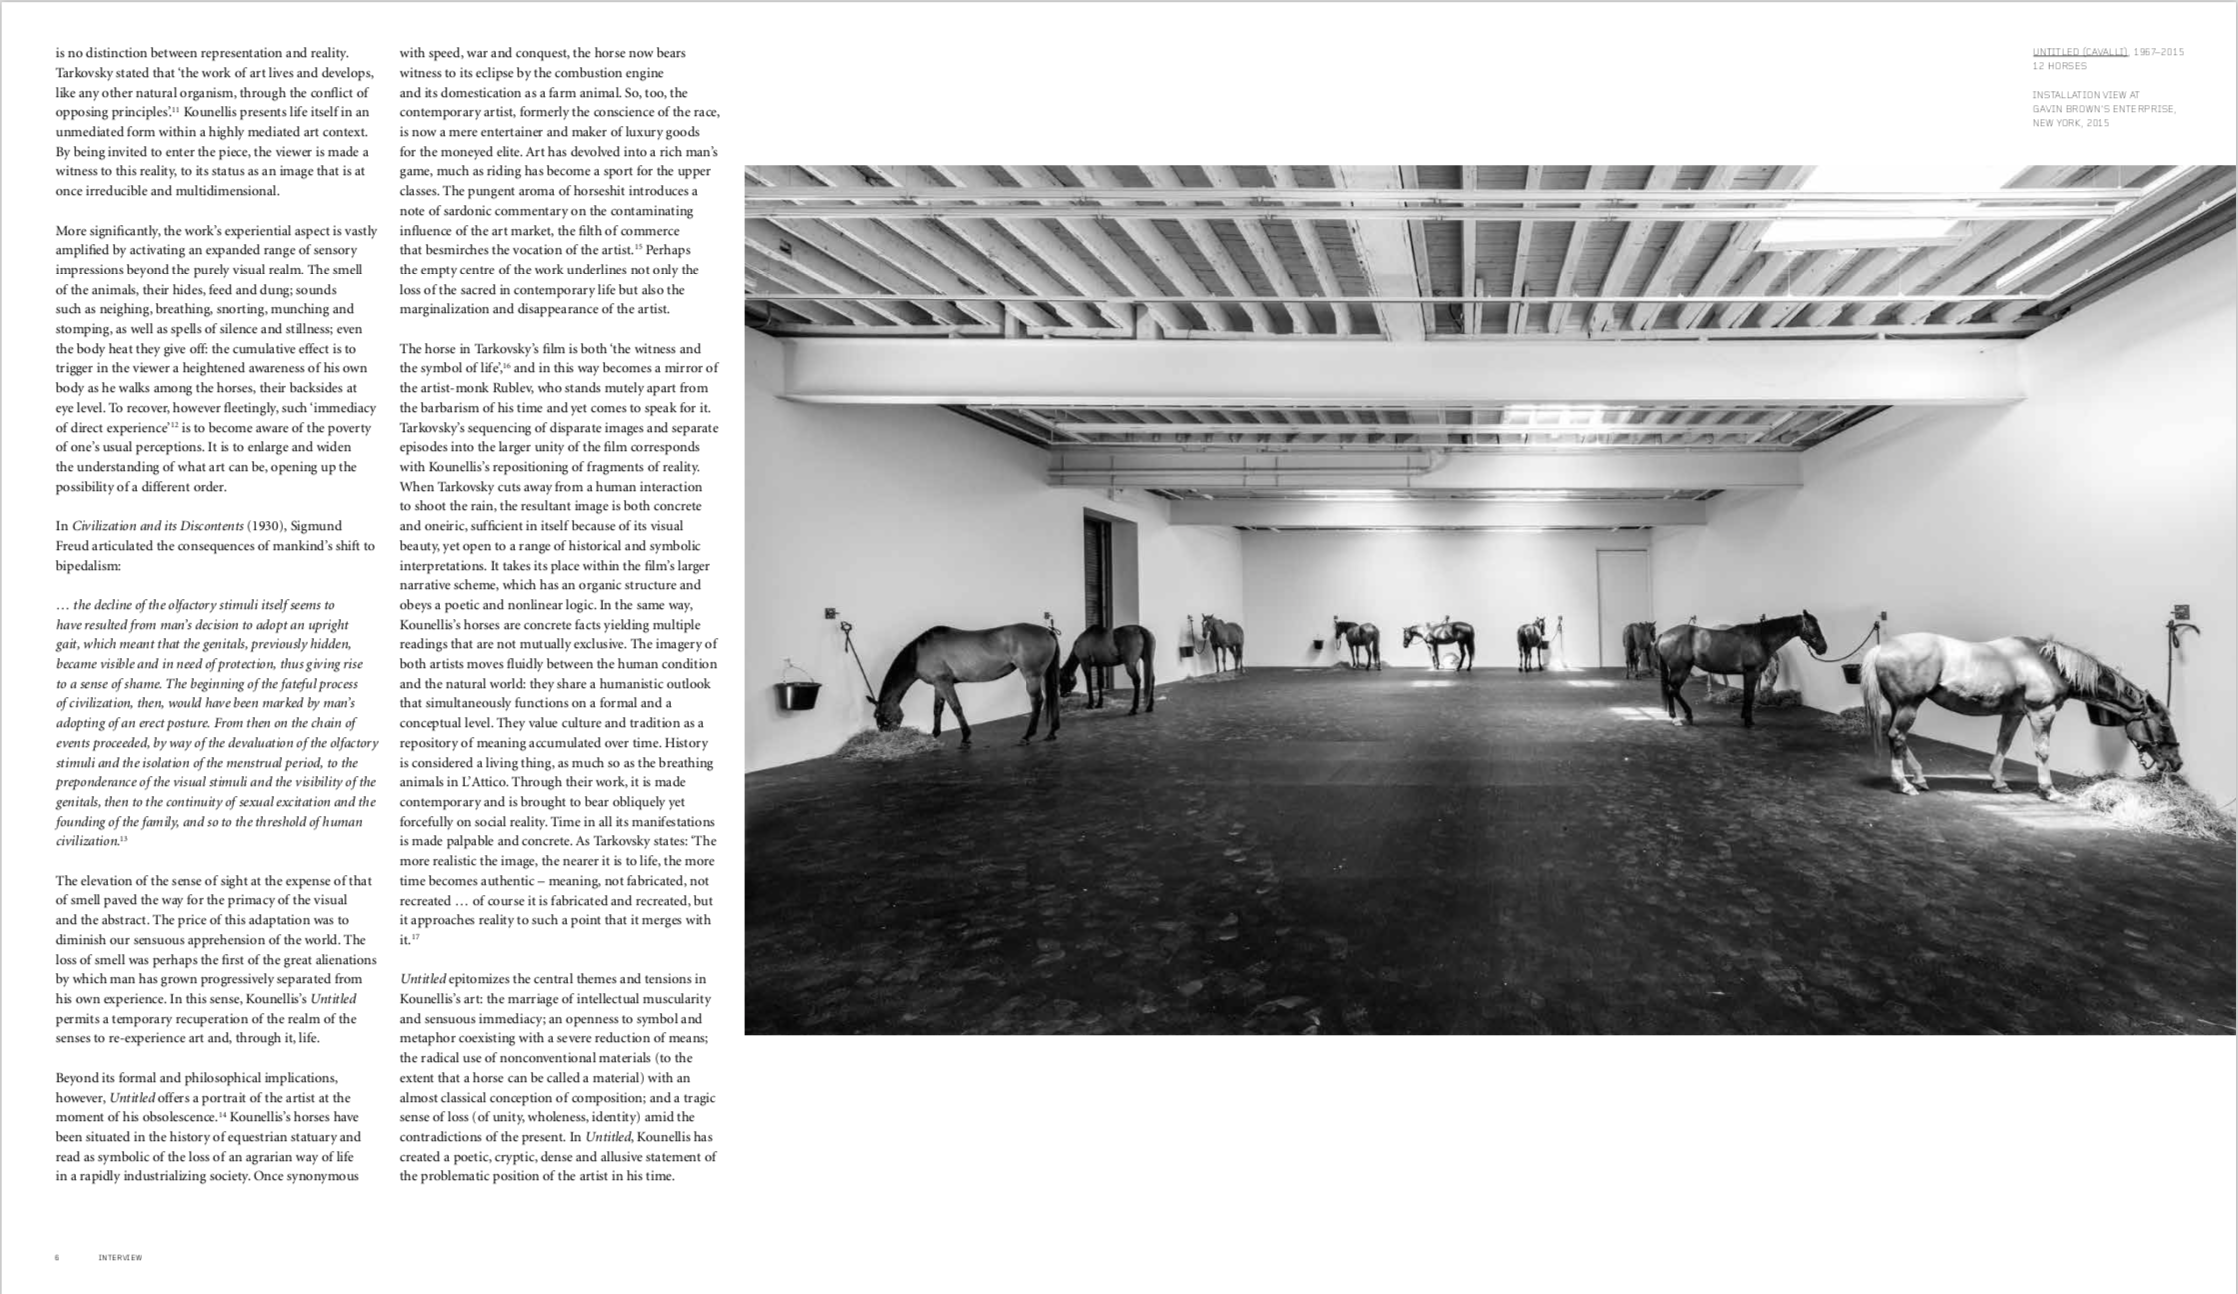 By Philip Larratt-Smith and Rudi Fuchs from Jannis Kounellis copyright Phaidon 2018